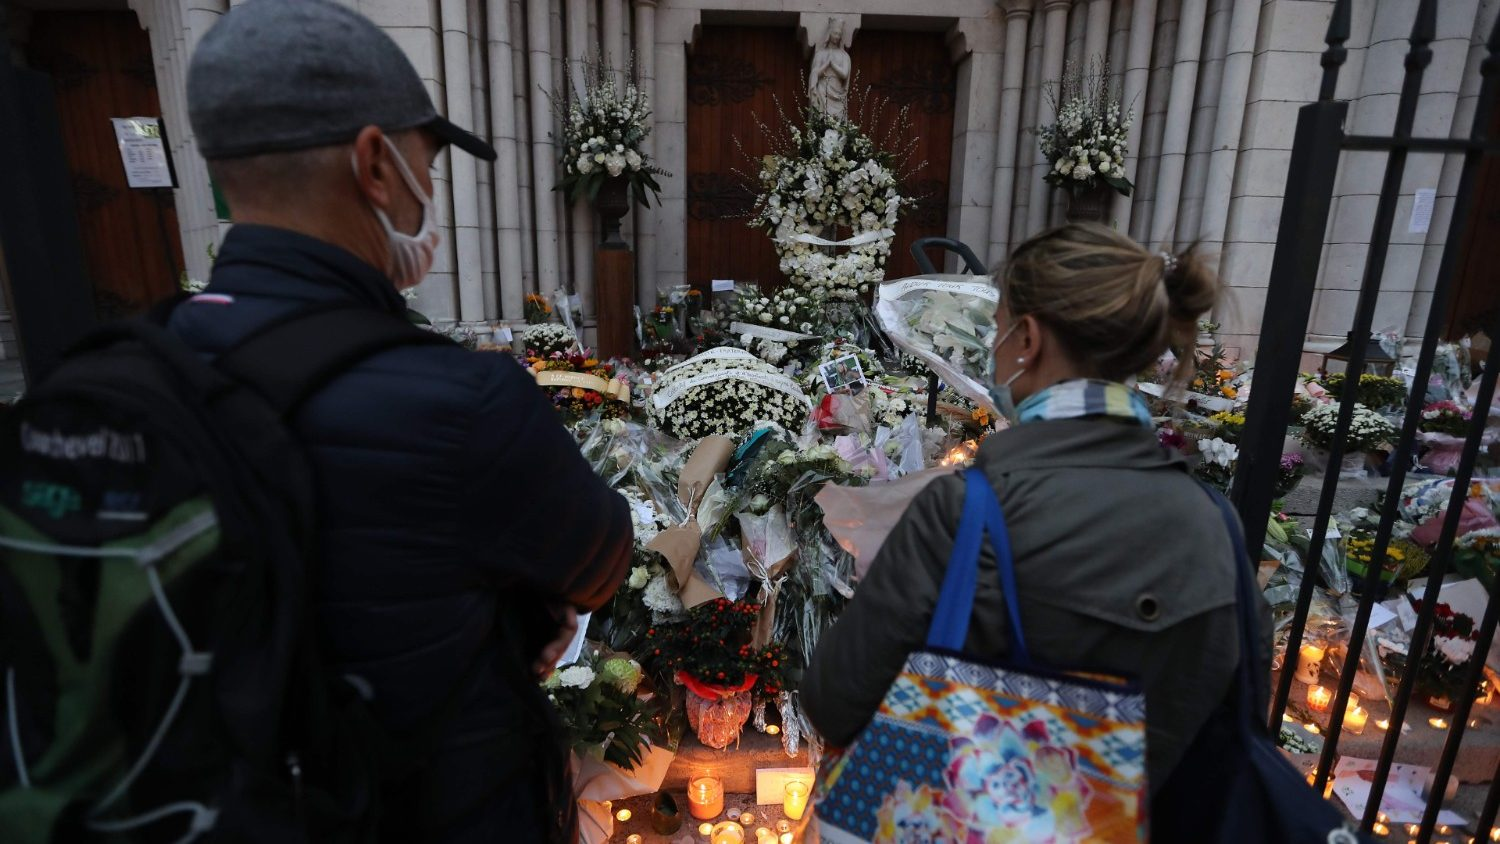 Nice: All Saints' Day Mass for the victims of the attack in the Basilica - Vatican News